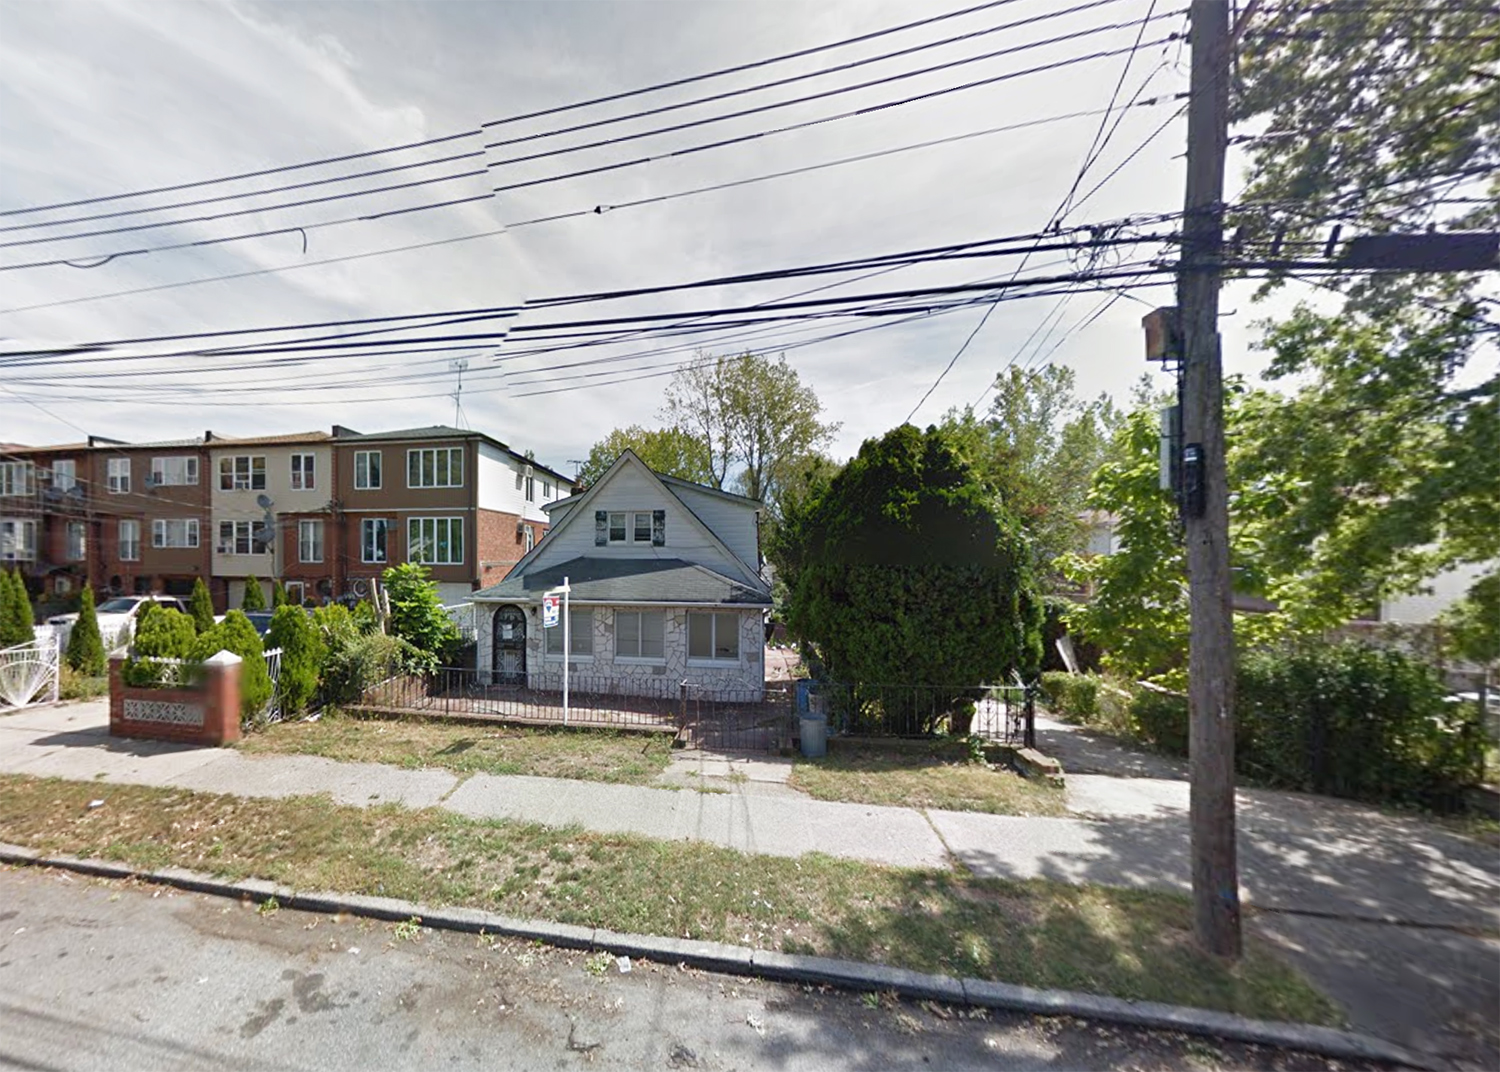 147-53A 231st Street. Via Google Maps.